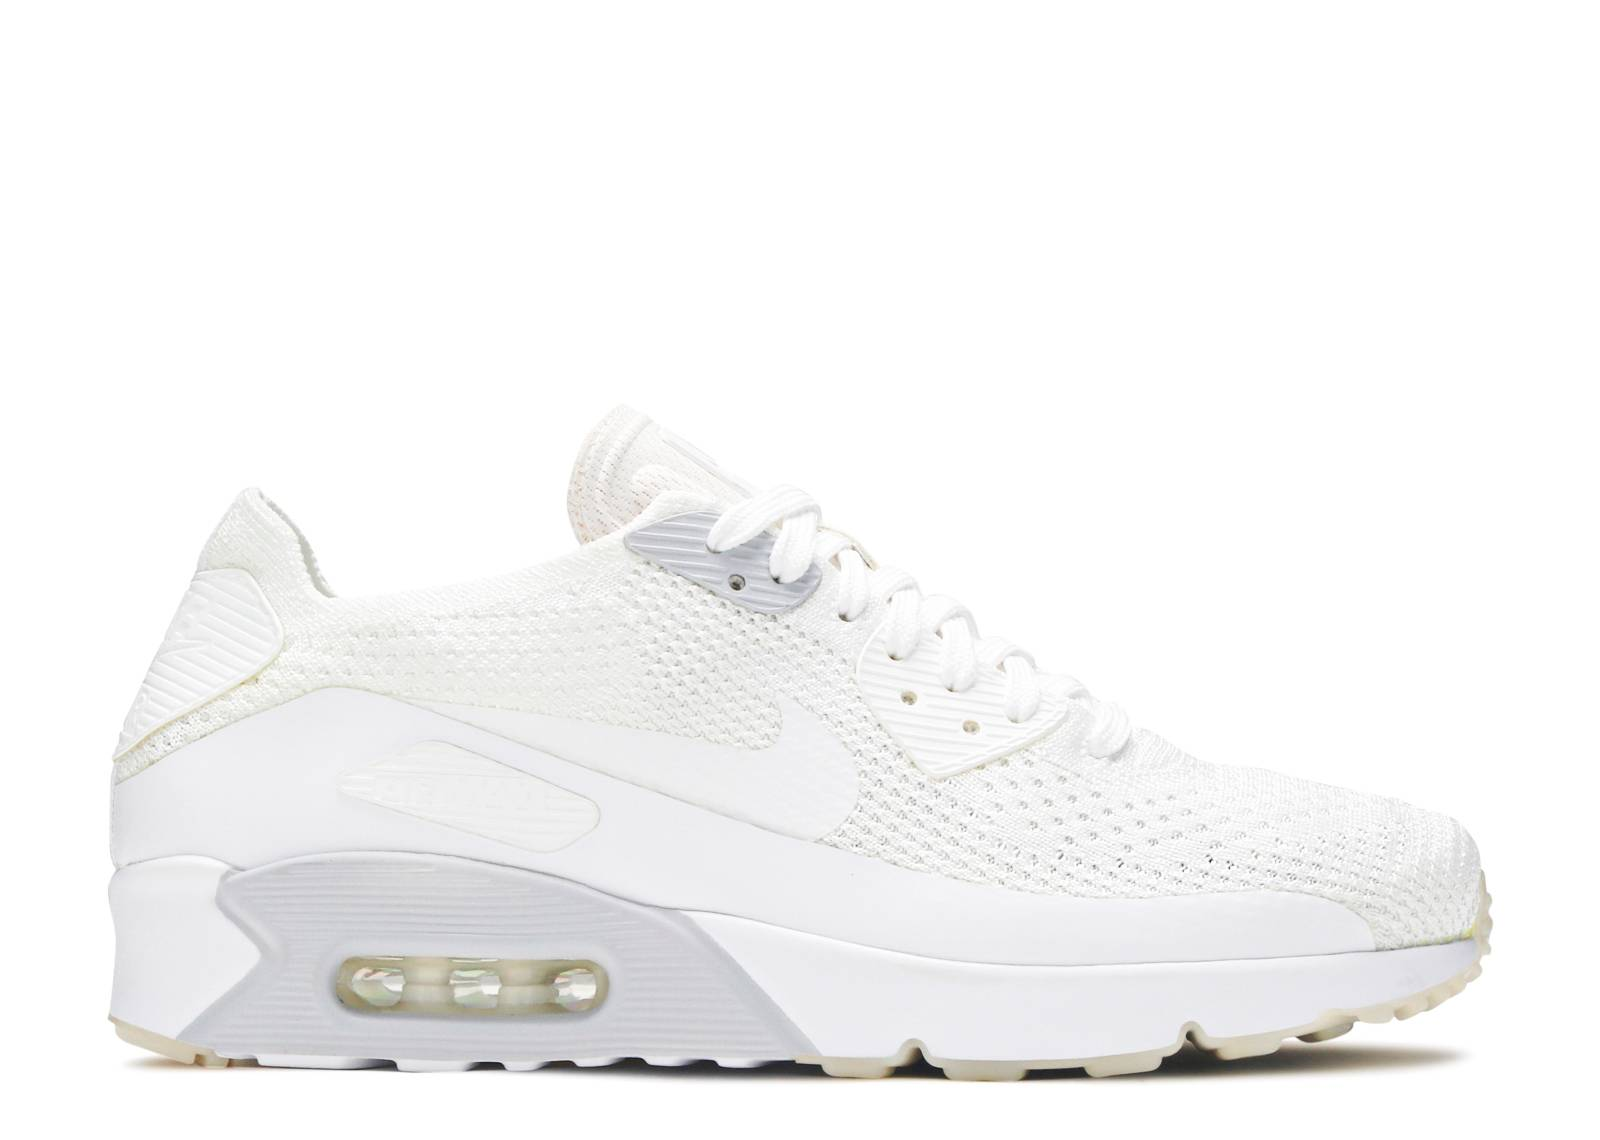 wholesale dealer 88b77 55248 Air Max 90 Ultra 2.0 Flyknit - Nike - 875943 101 - white/white-pure ...